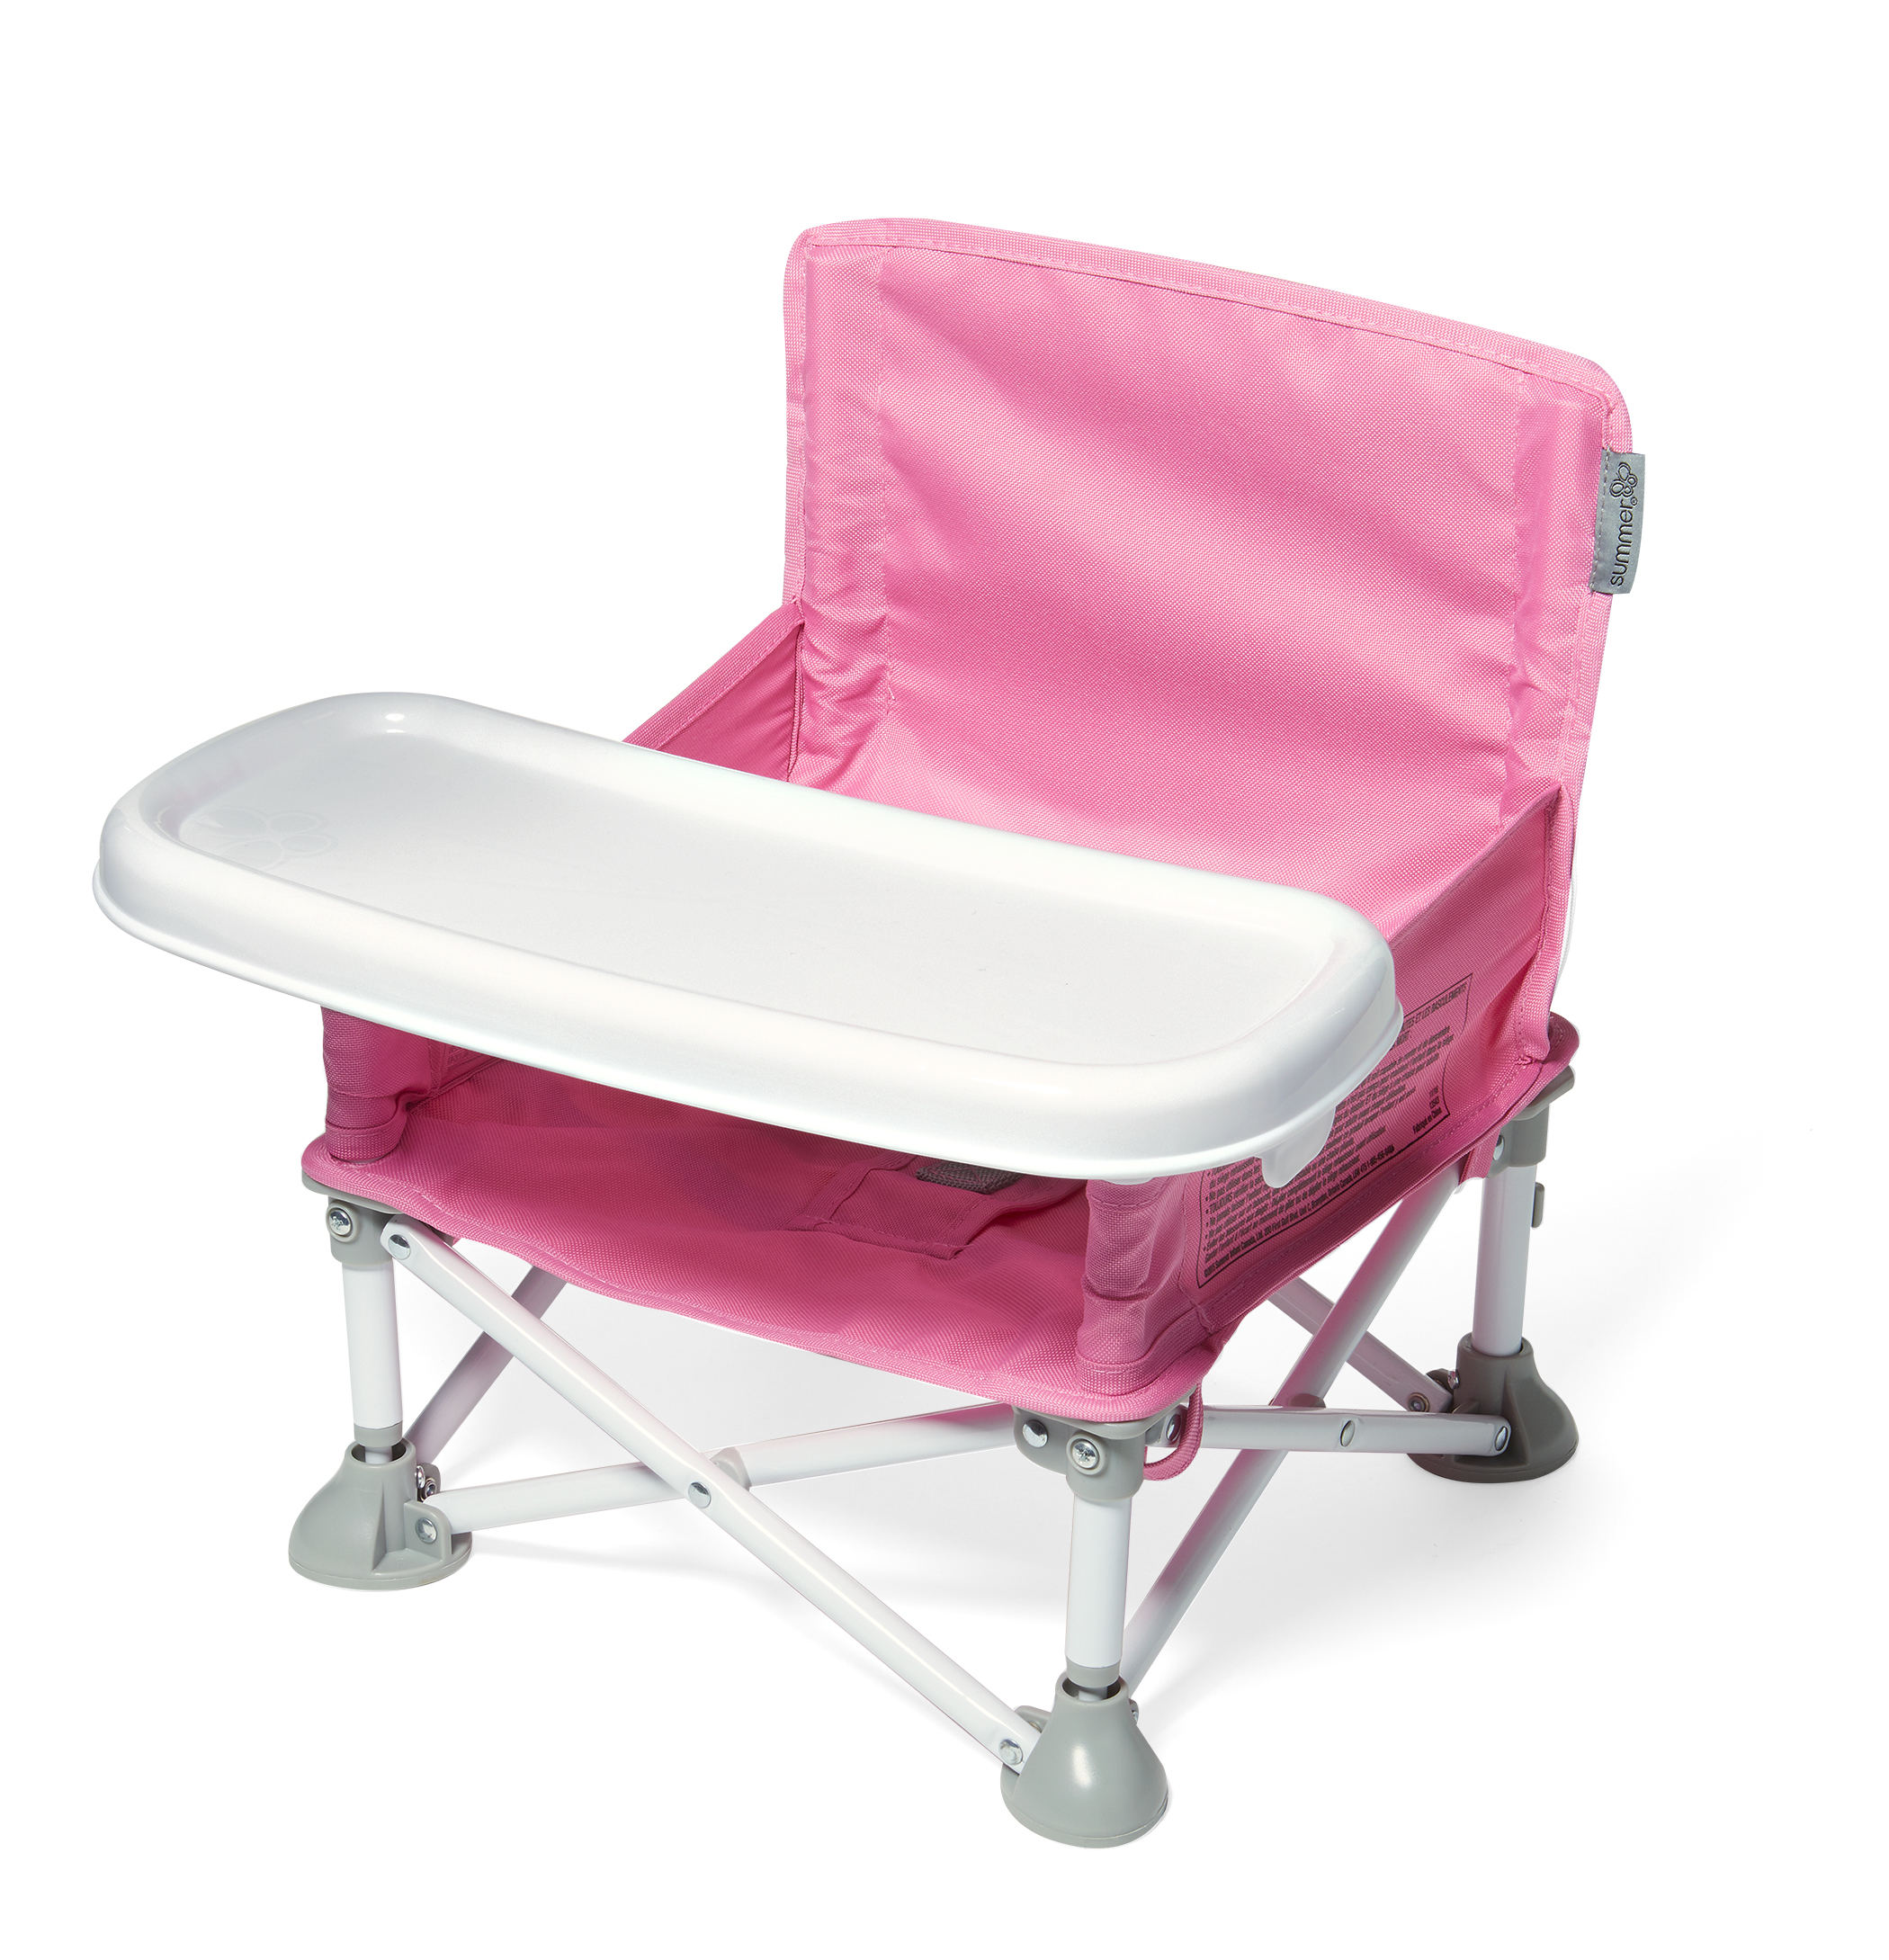 Pink Prop a Pop 'N Sit Portable Booster